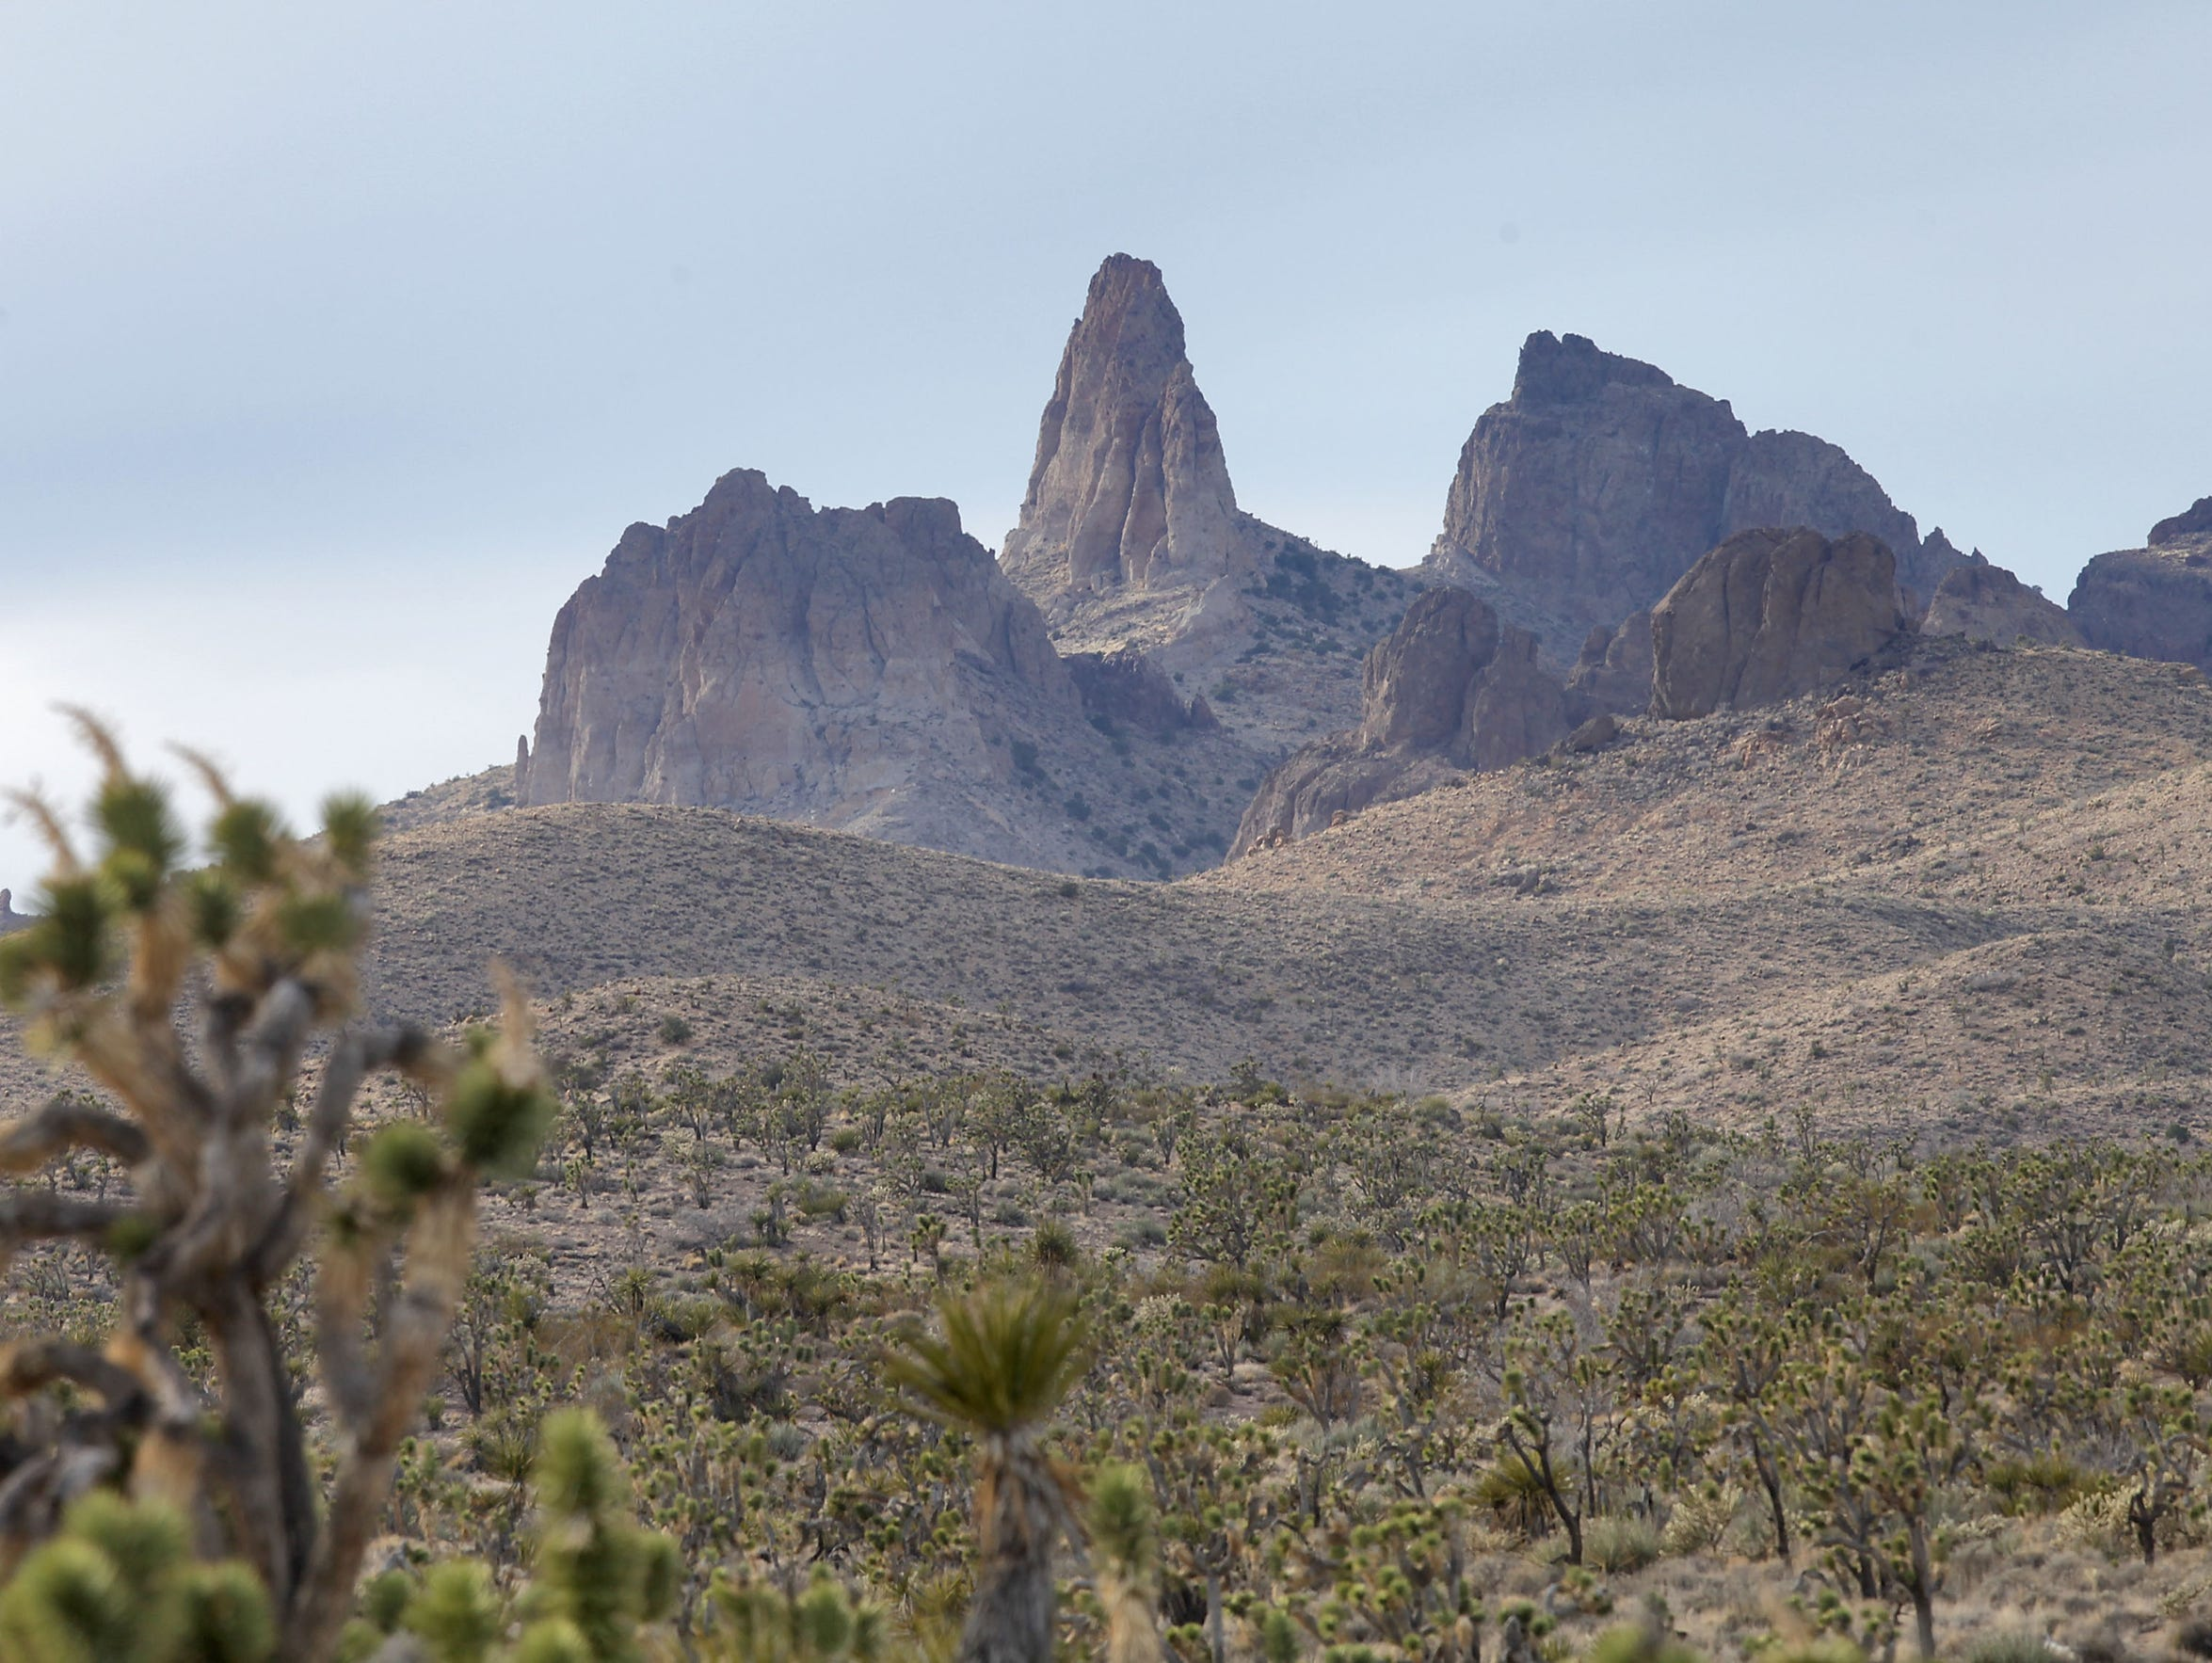 The Castle Peaks got their name because they resemble